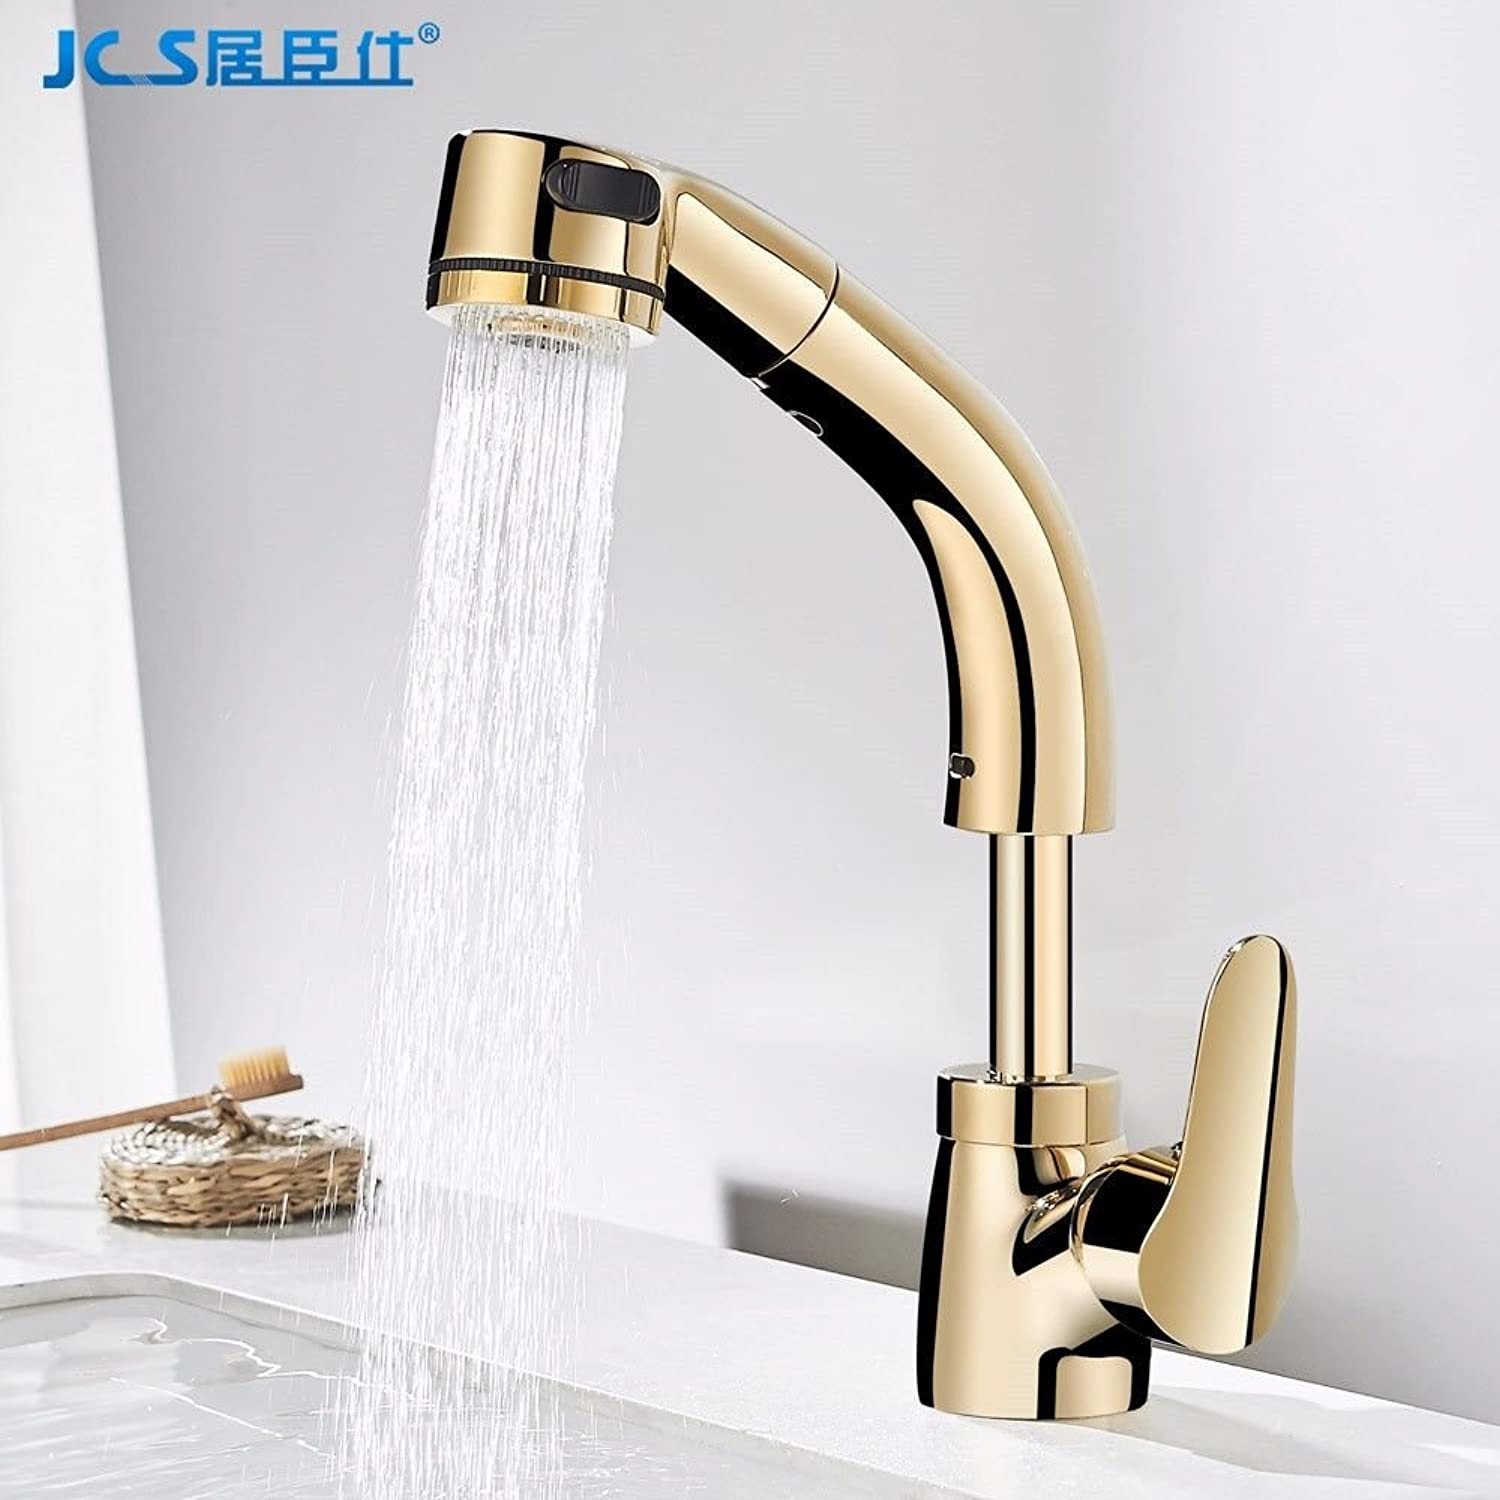 gold plated cover soild brass ceramic valve water supply hoses HUIJIN1 360°rotation bathroom sink faucet basin mixer tap with diamond decoration Commercial Bathroom Sink Taps